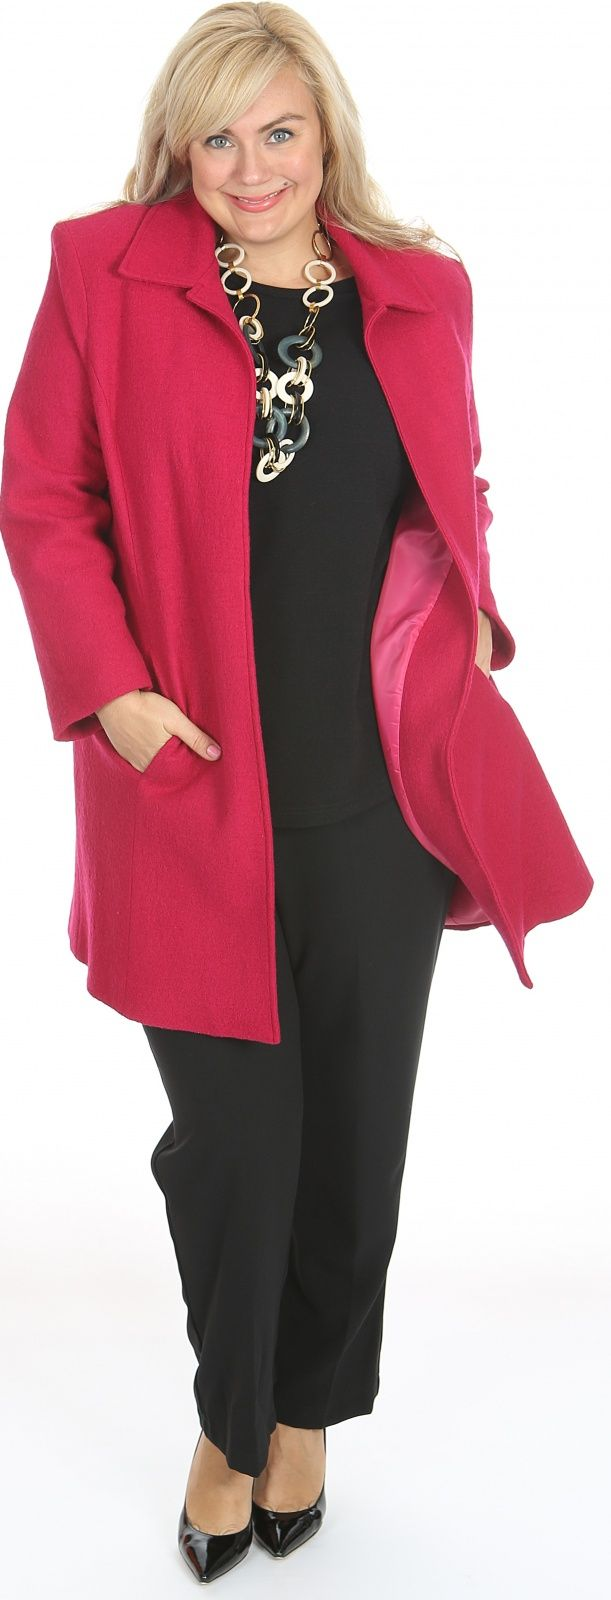 Chic boiled wool car coat raspberry: Versitile boiled wool car coat from Lucia Darling. Pictured here in raspberry. Also avaiable in black and royal blue. Approx length shoulder to hem 90-100cm. Fabric: Wool Label: Lucia Darling